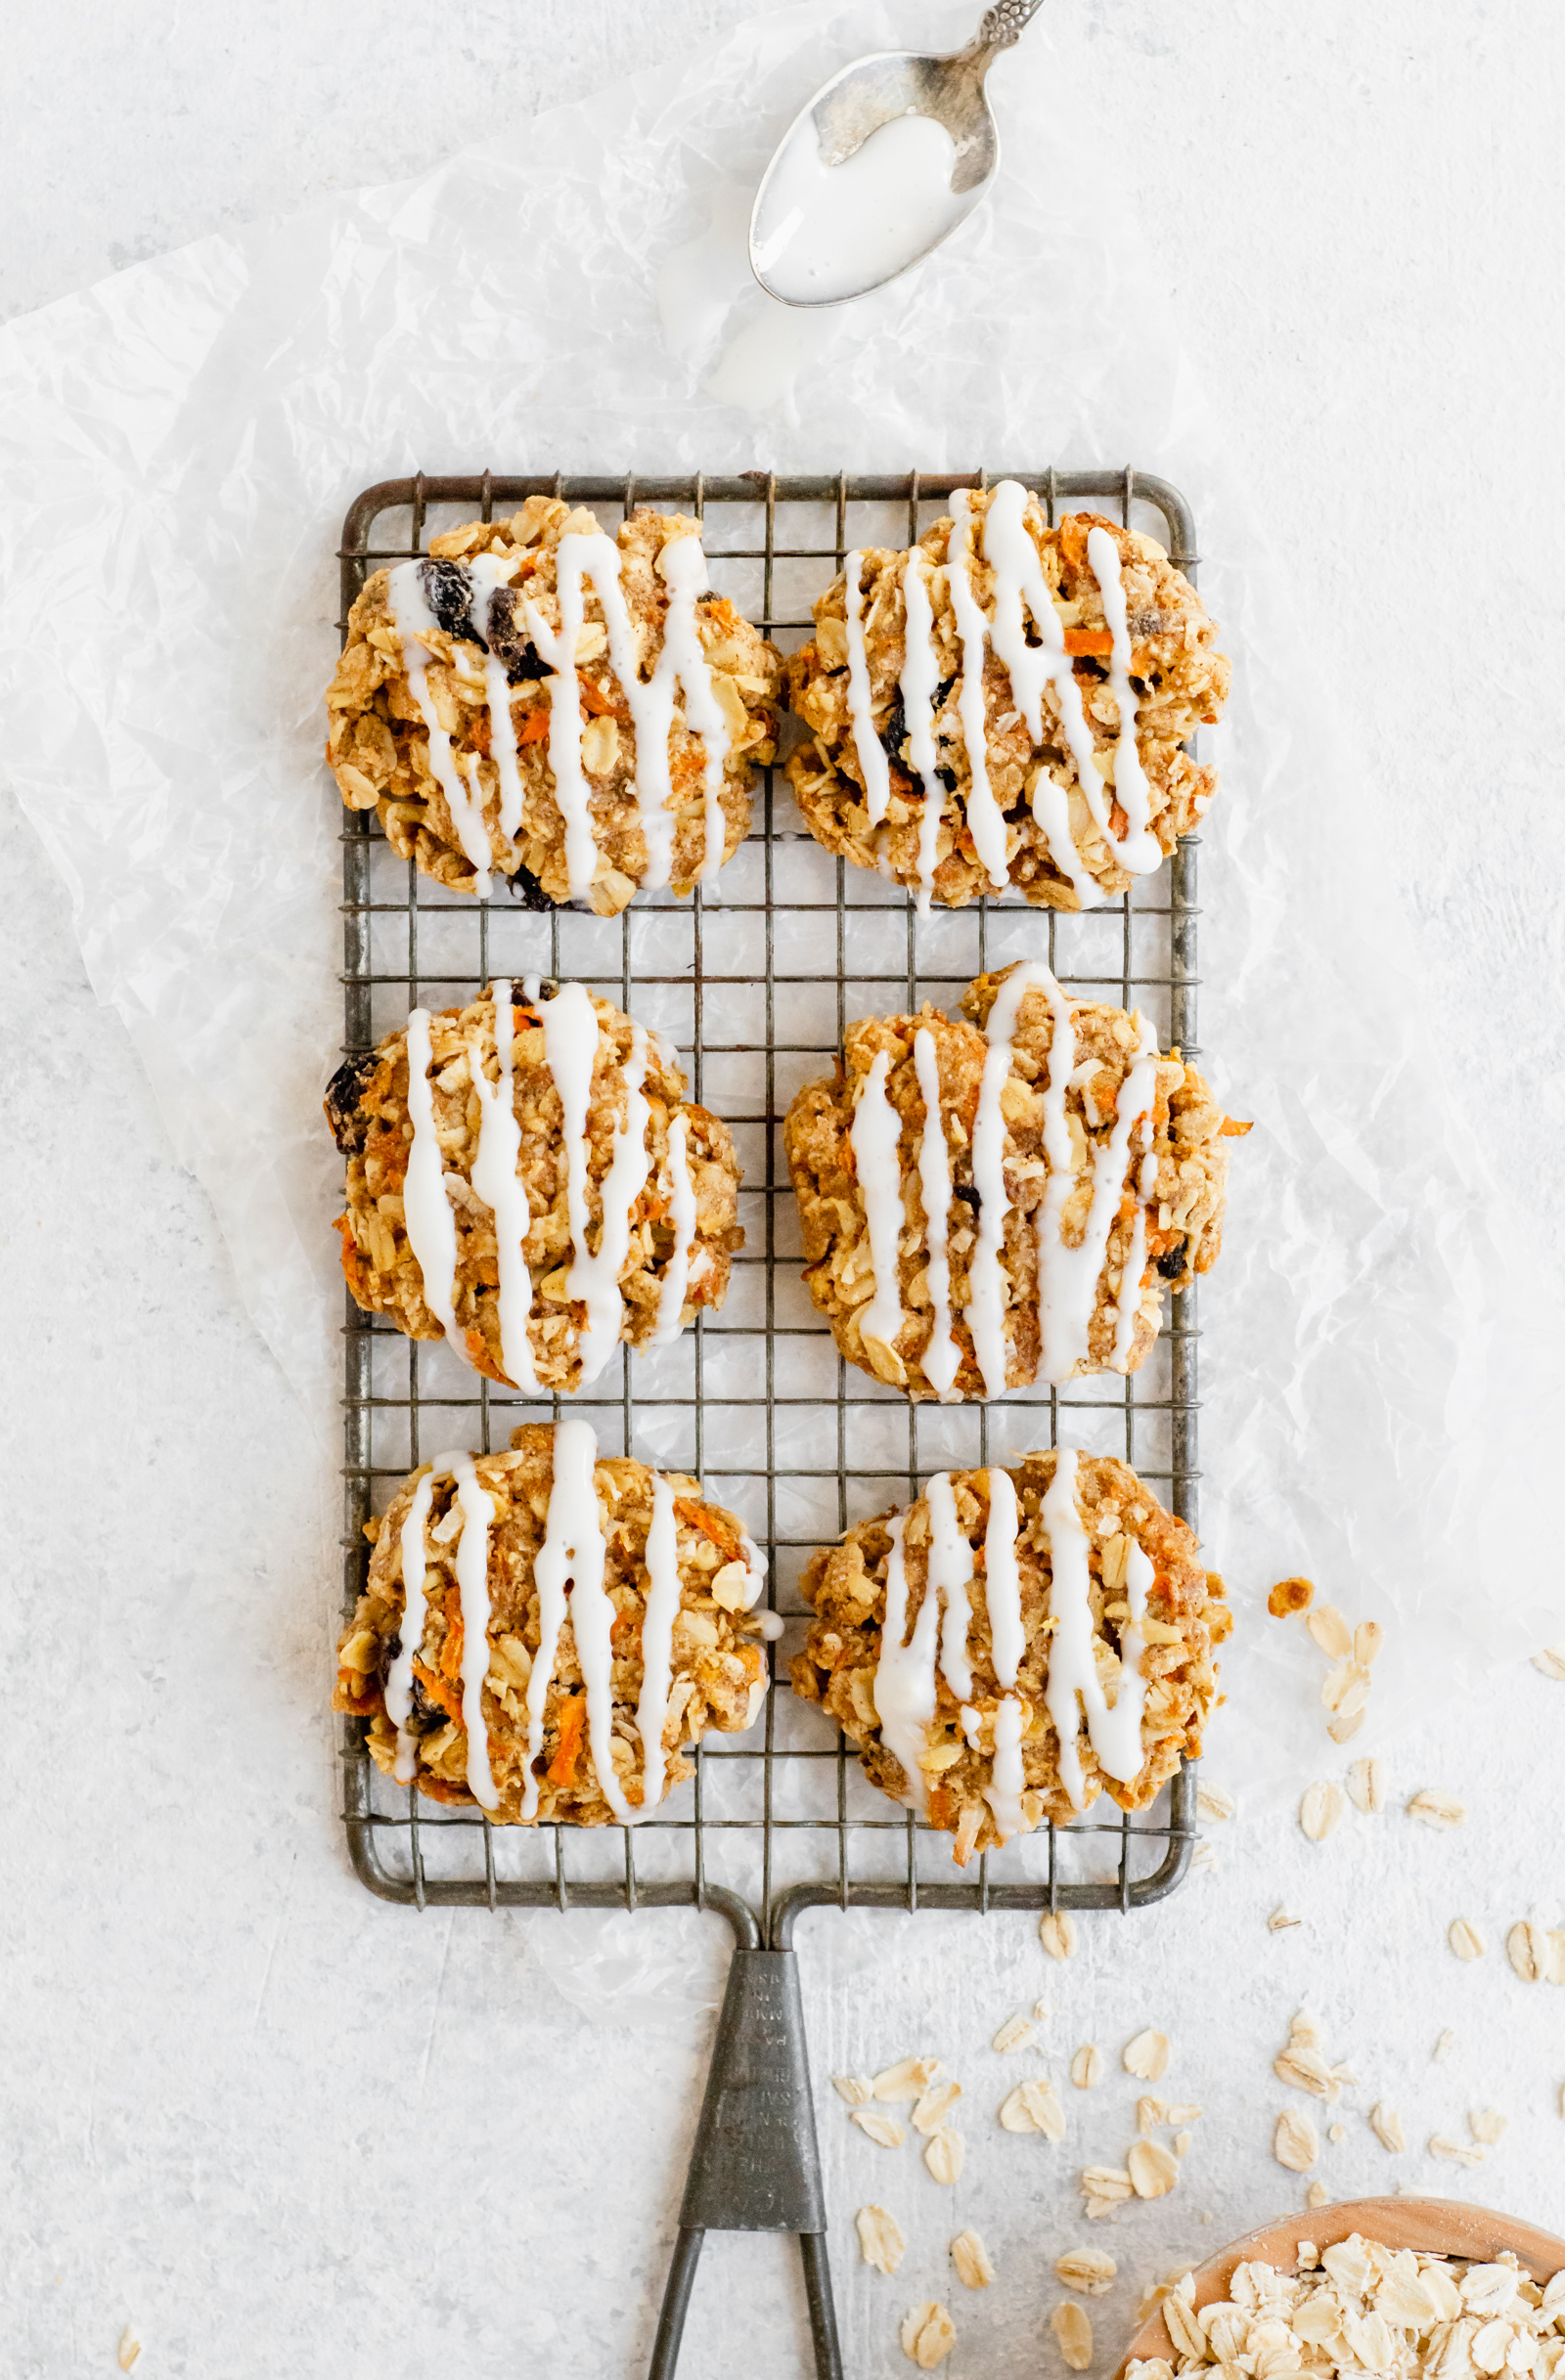 Six carrot cake cookies lined up on a wire rack with a spoon and oats next to it